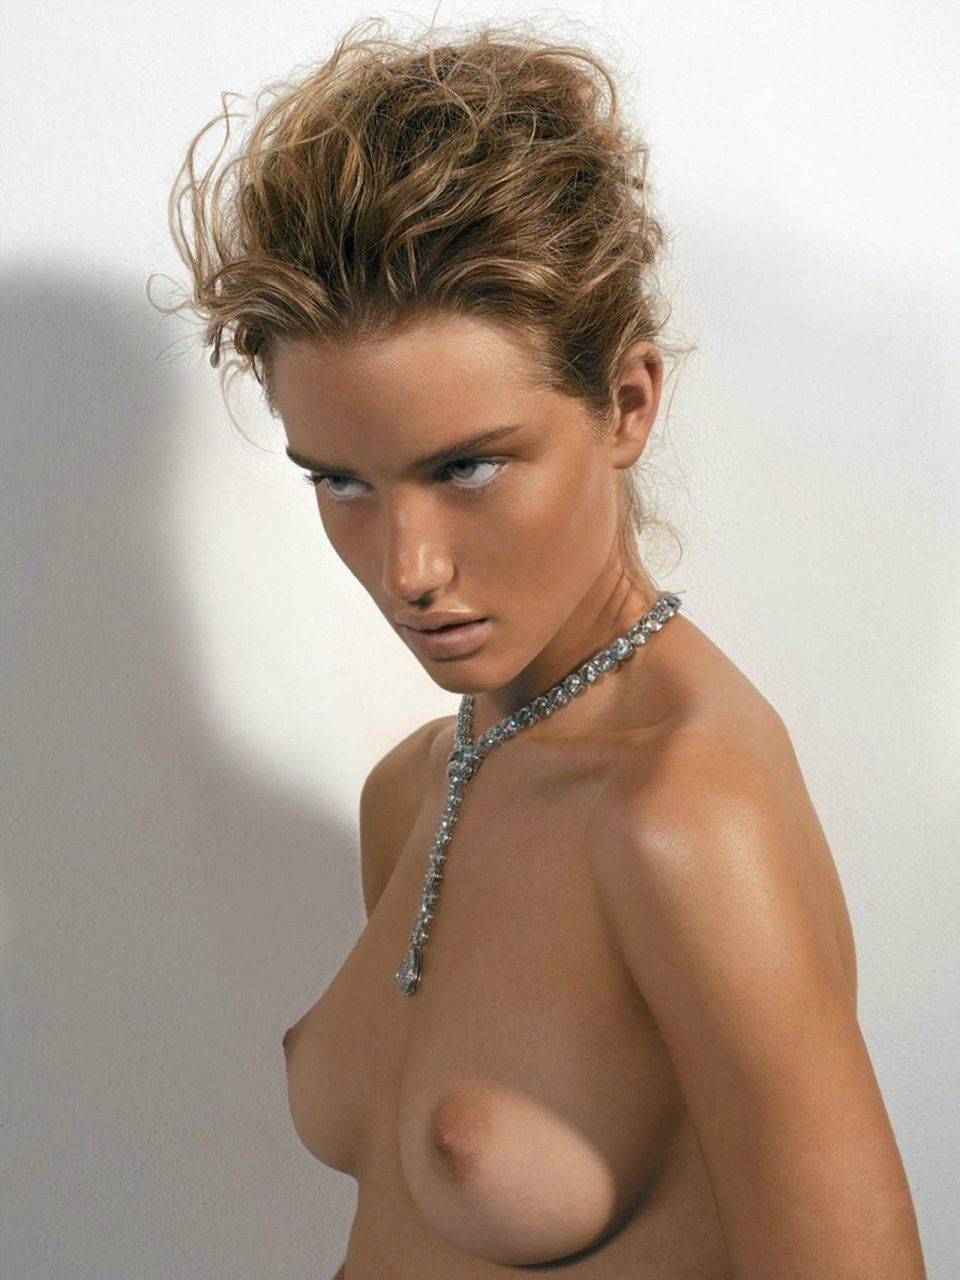 Rosie Huntington Whiteley Naked Topless